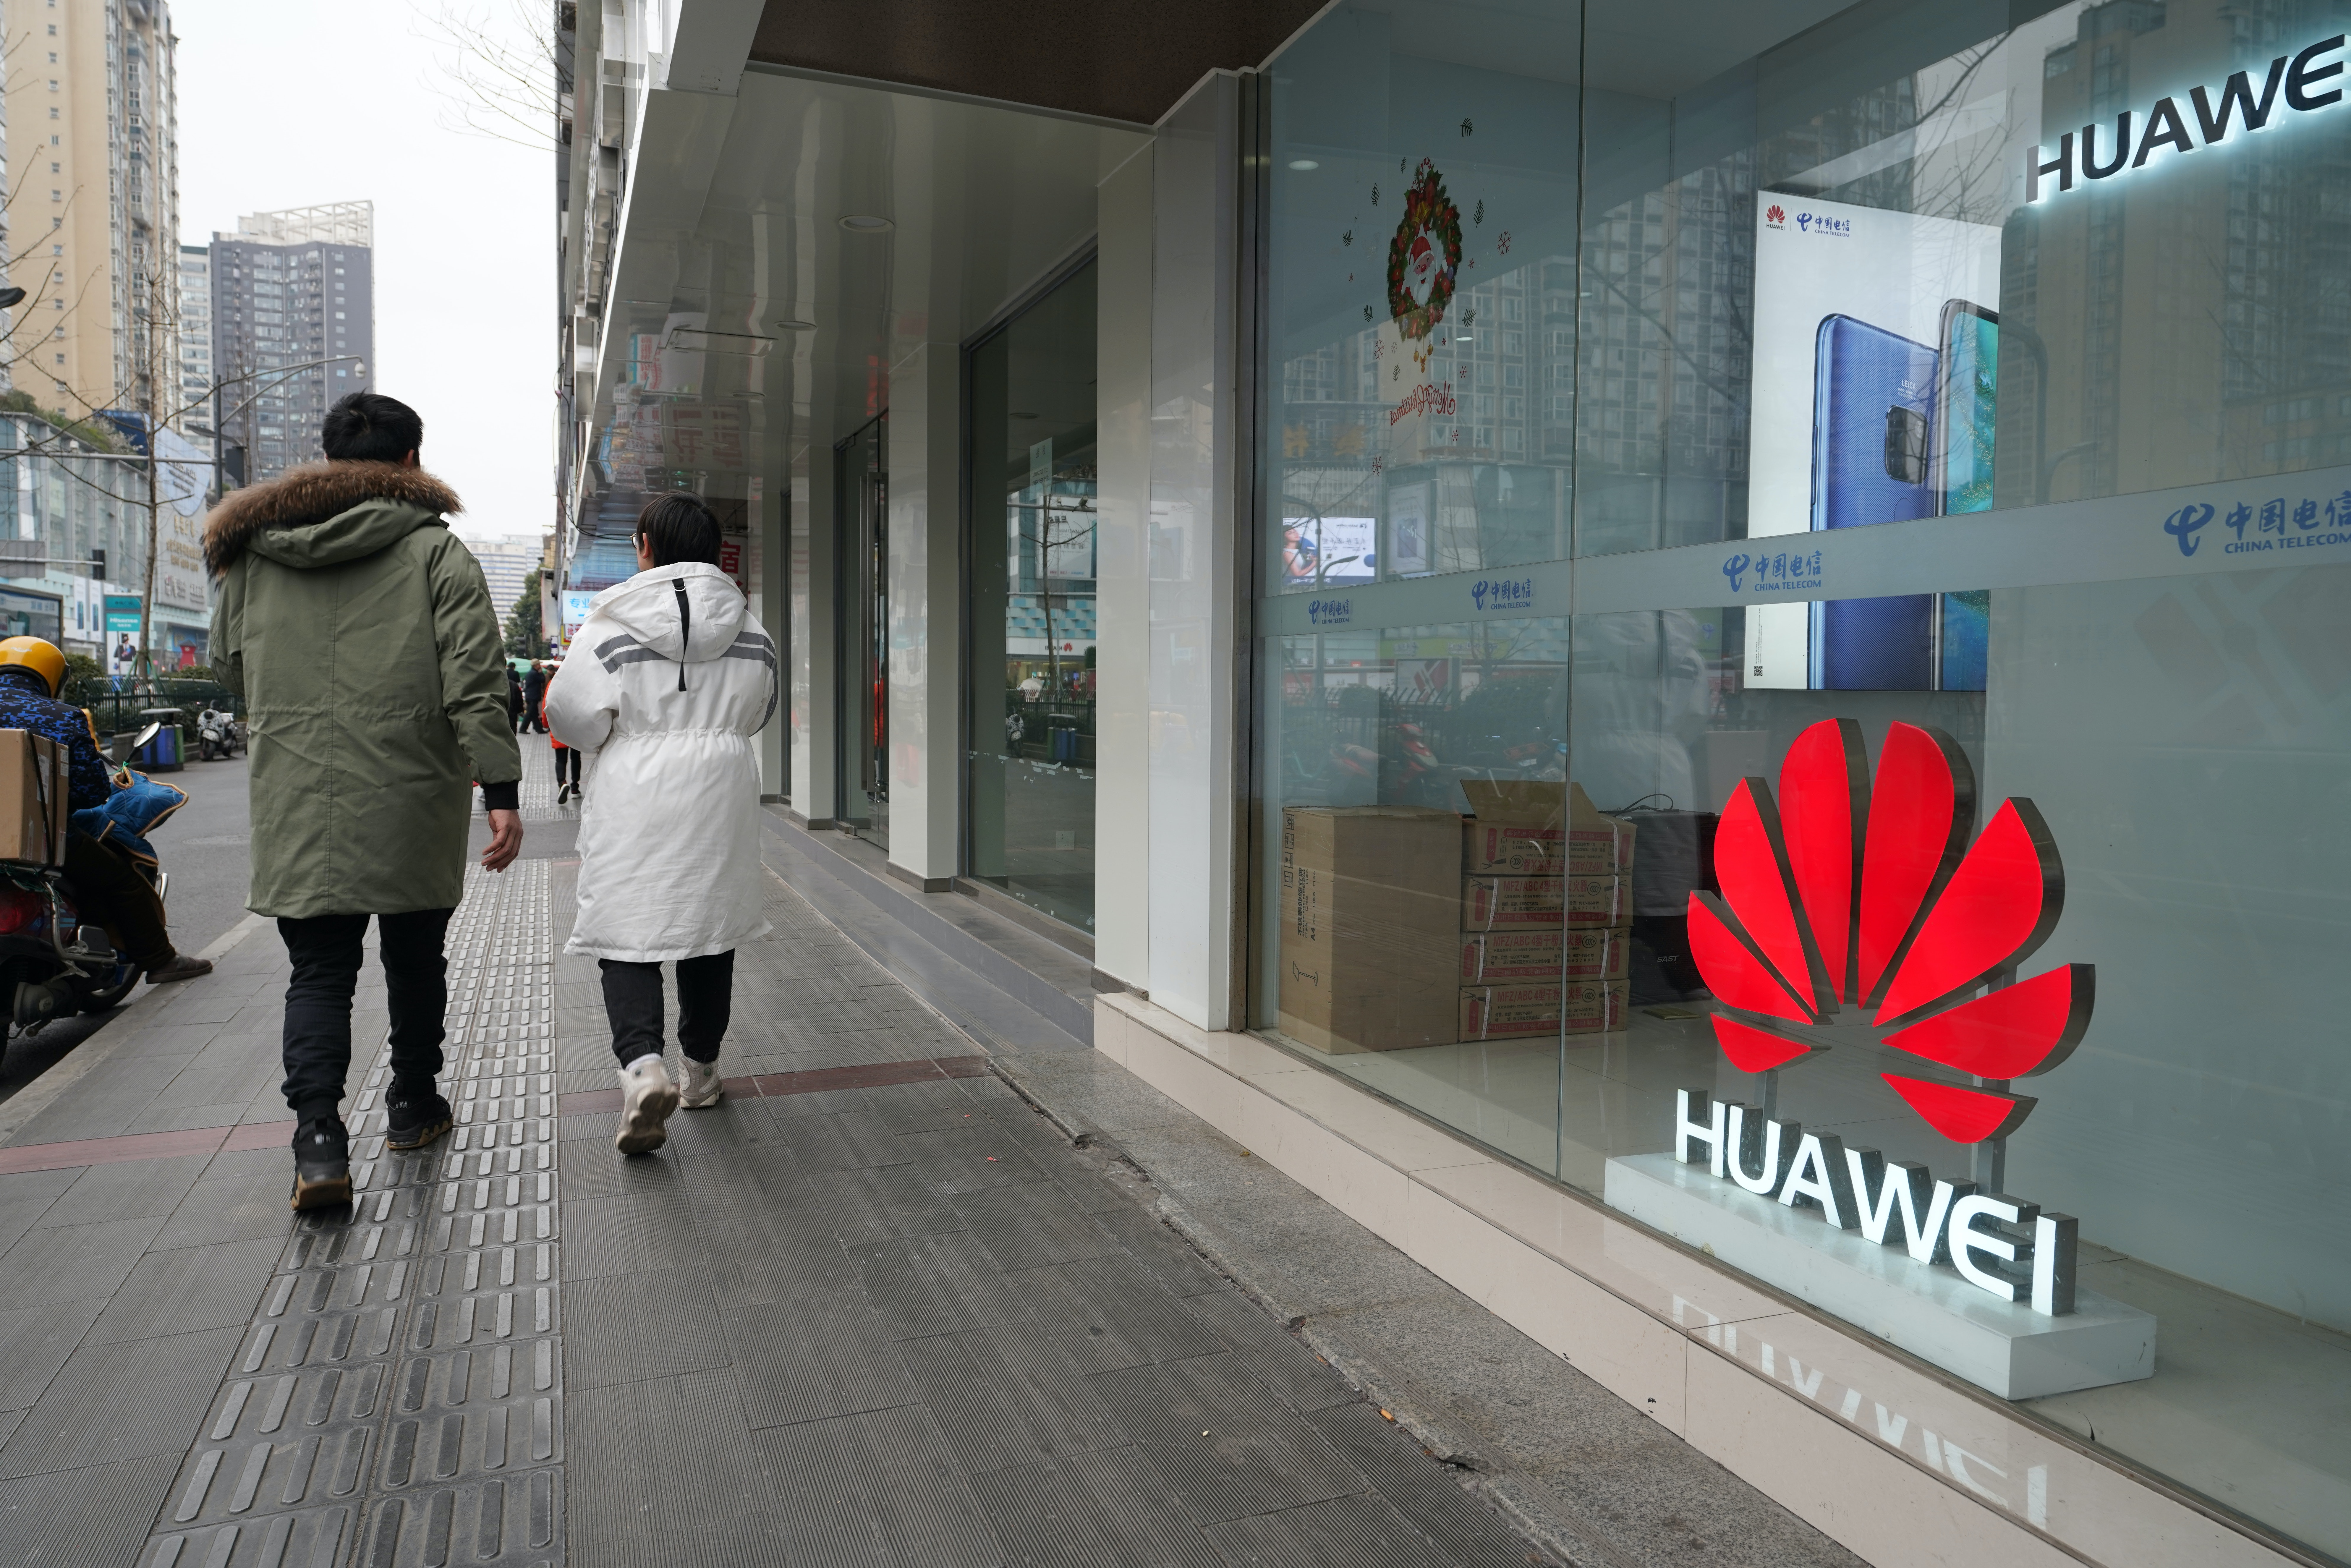 US ban on Huawei likely following Trump cybersecurity crackdown – and Australia is on board